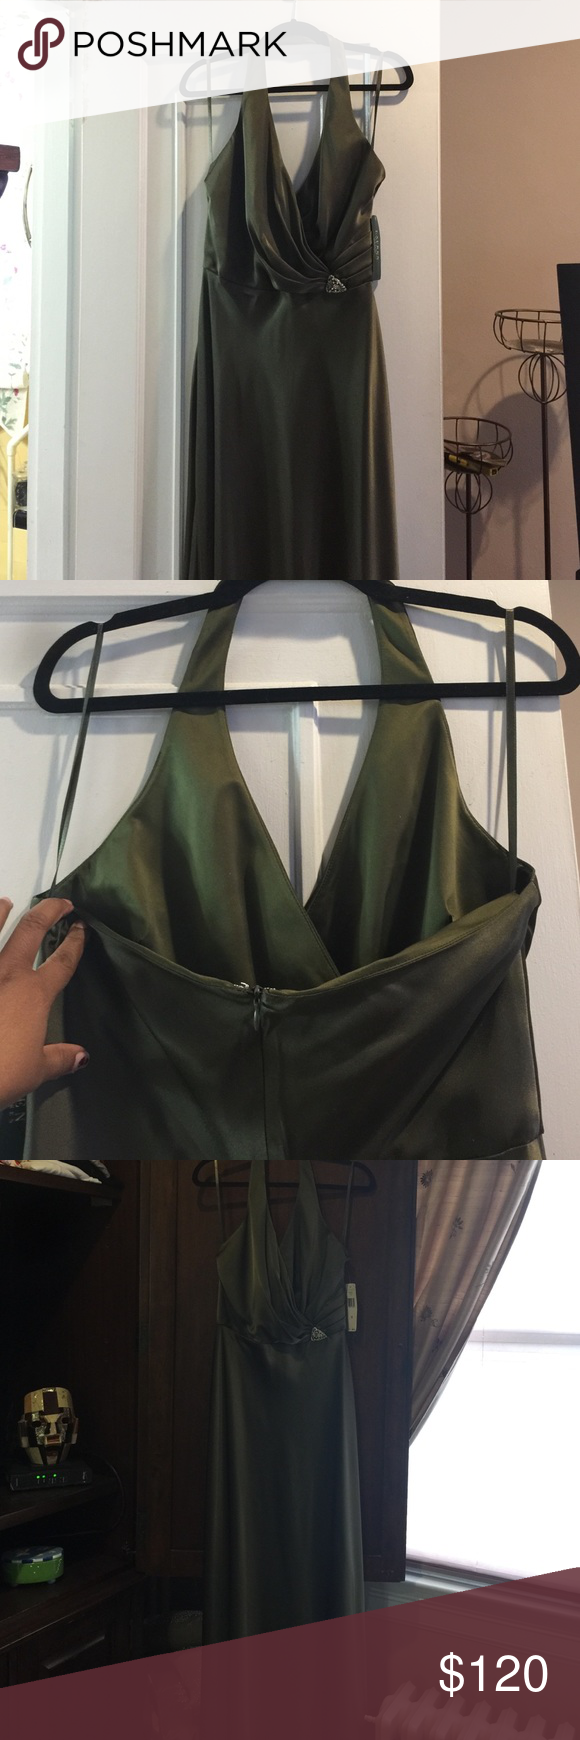 Ralph Lauren olive halter top gownl Just in time for the holidays. Beautiful Ralph Lauren olive colored, halter top gown. Reveals top portion of back but not too much. Very flattering. Bought for themed wedding and the theme changed. Ralph Lauren Dresses Maxi